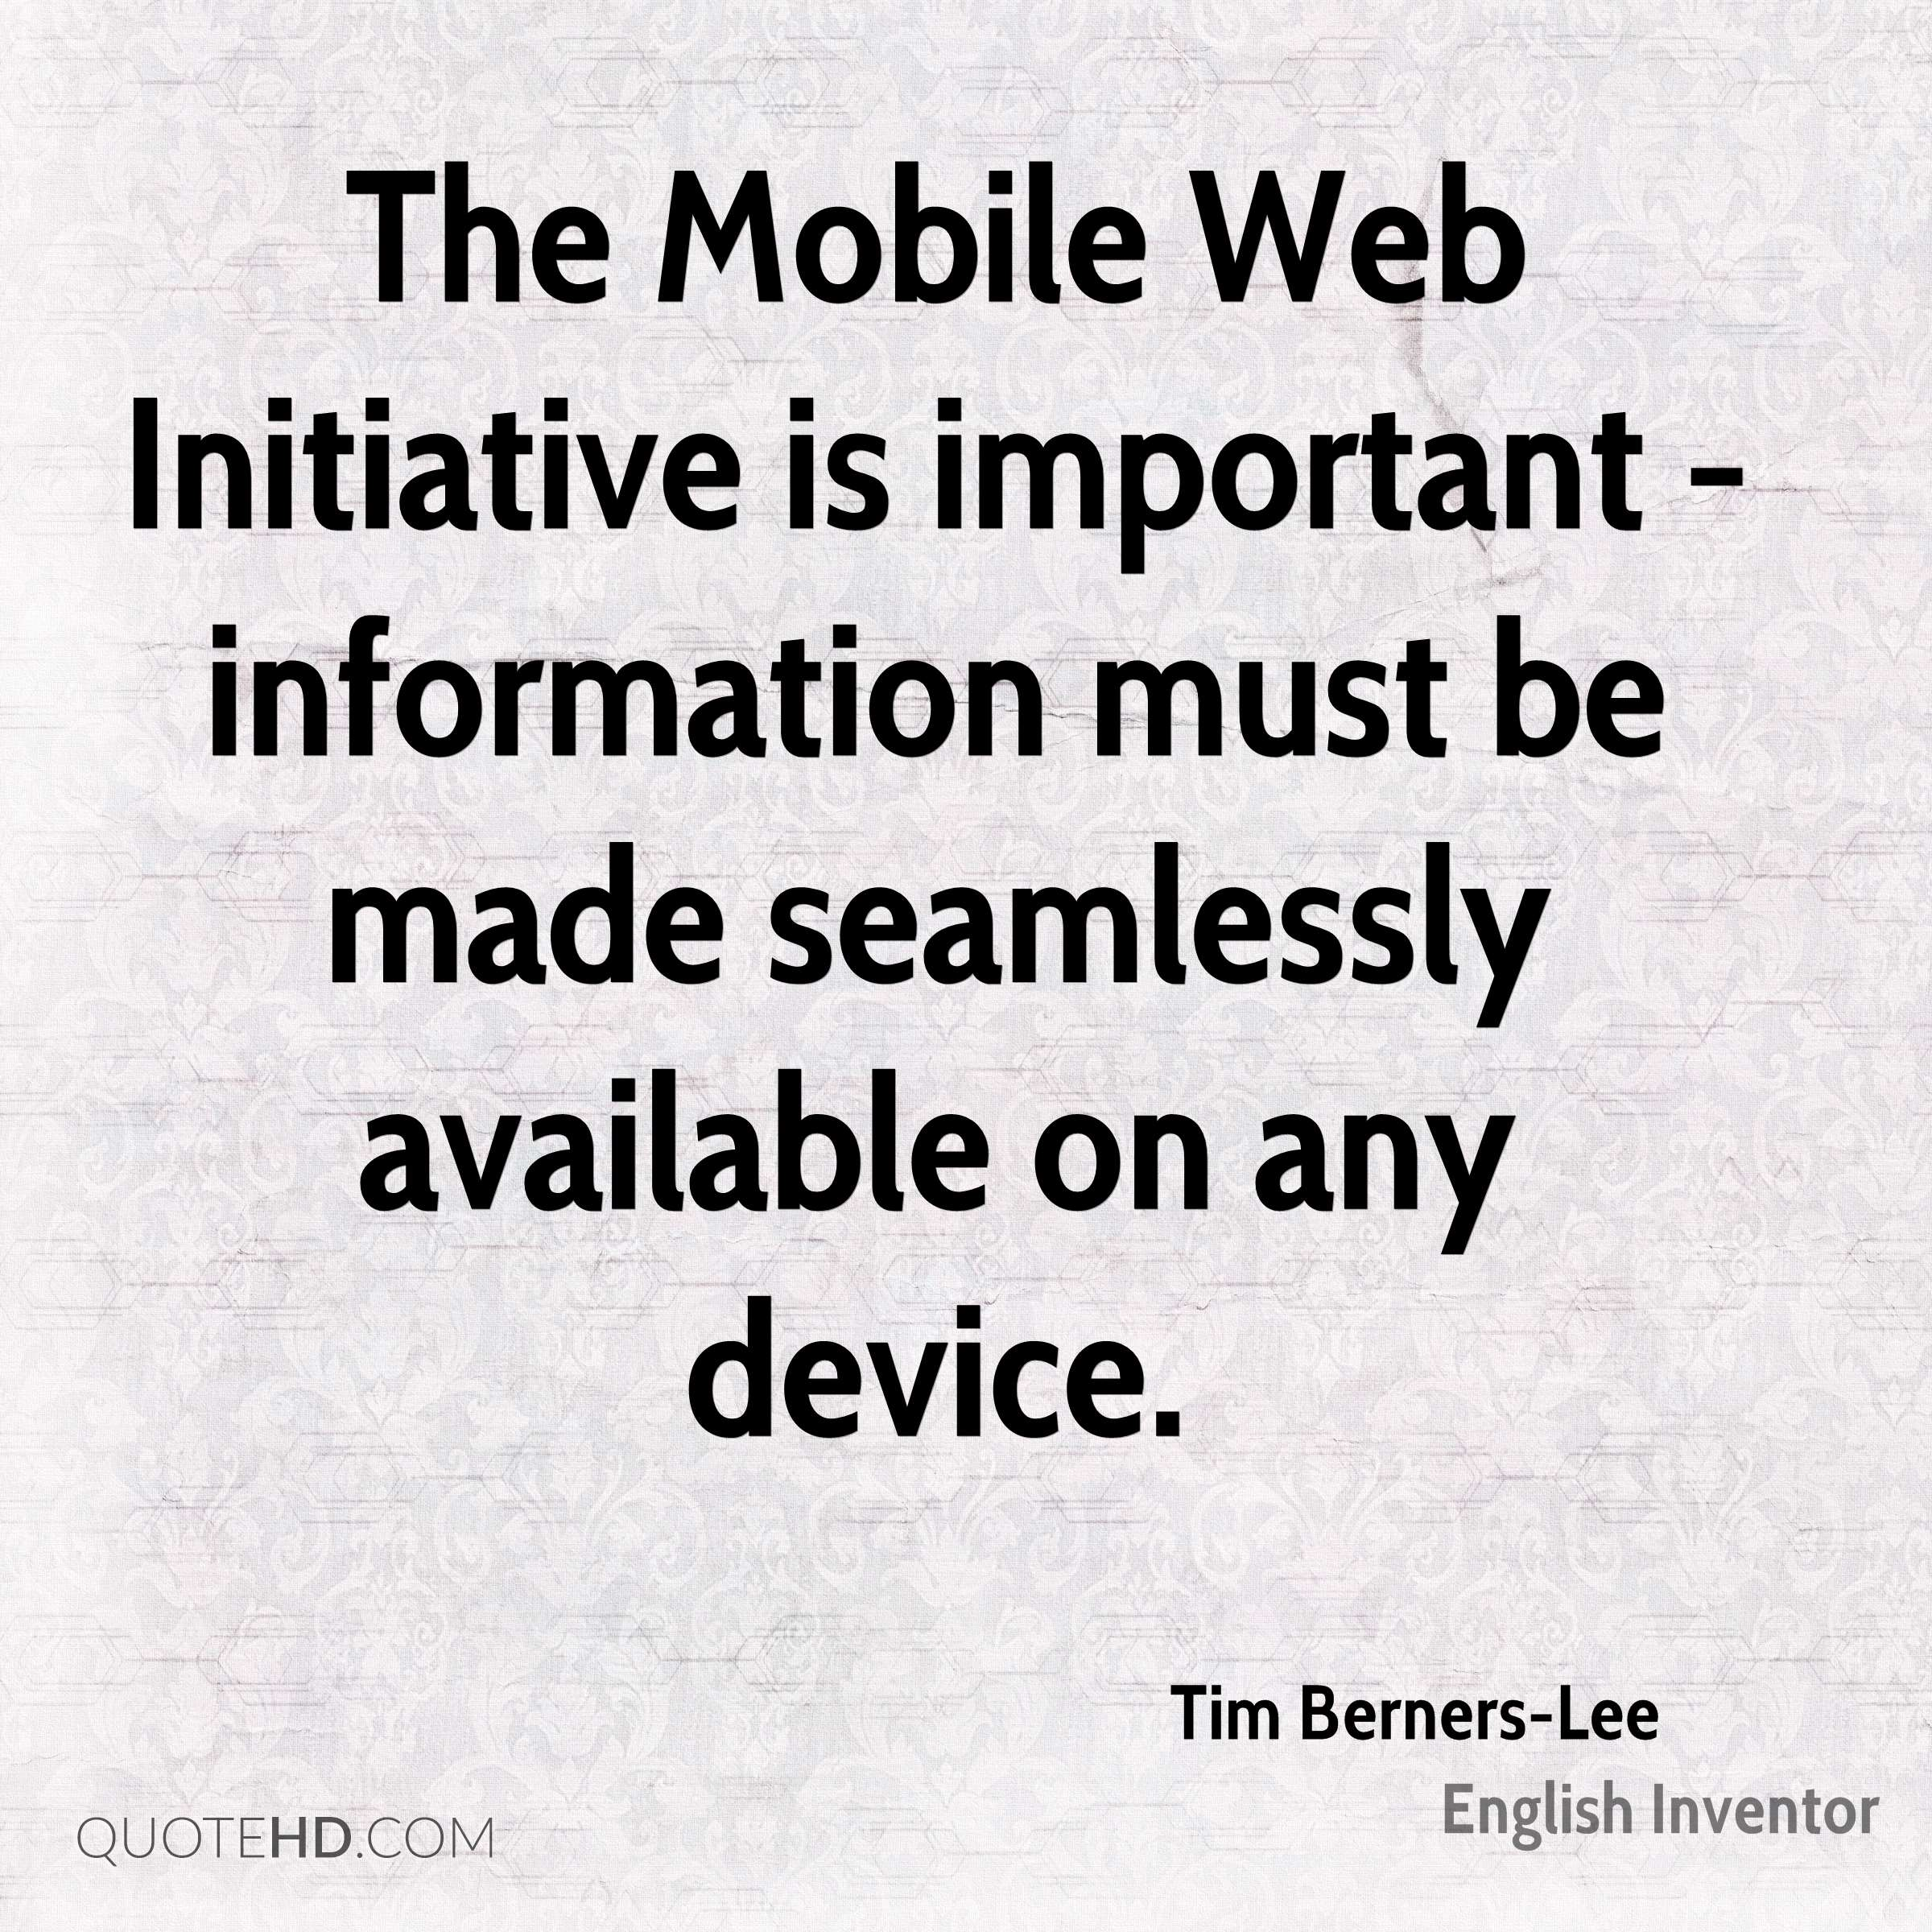 The Mobile Web Initiative is important - information must be made seamlessly available on any device.